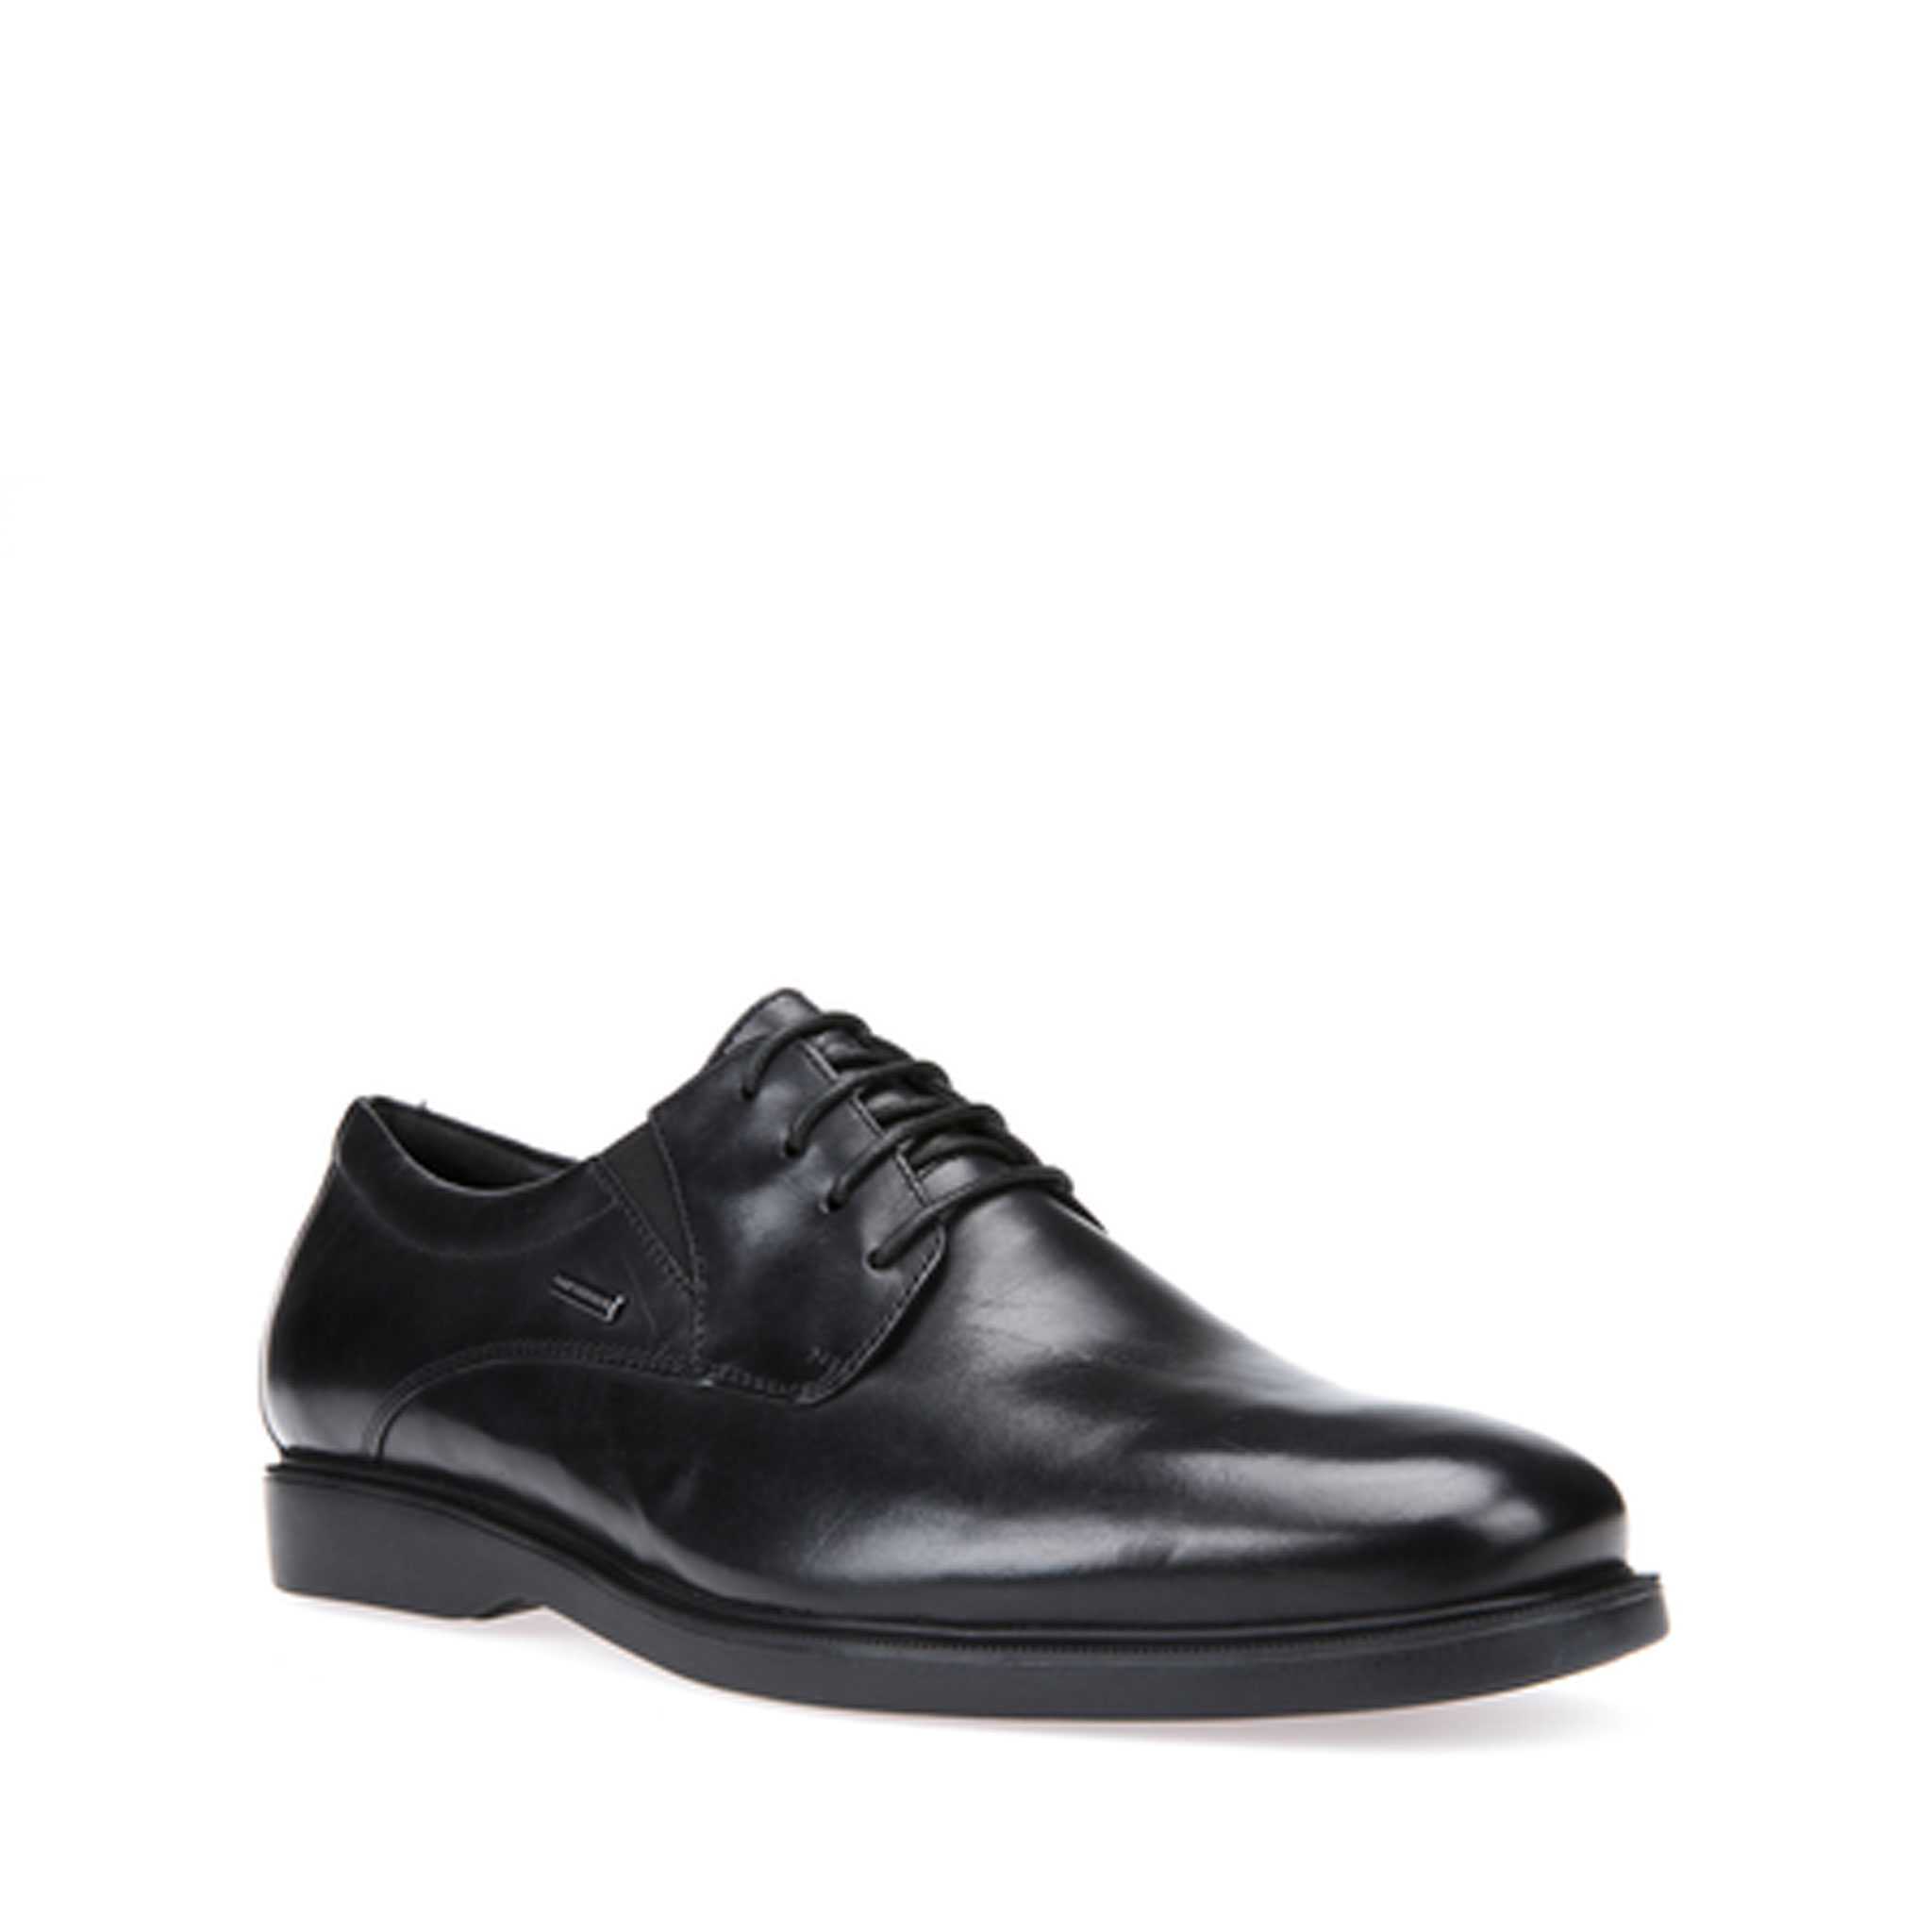 Geox Men's Brayden Oxford in Black - image 2 de 4